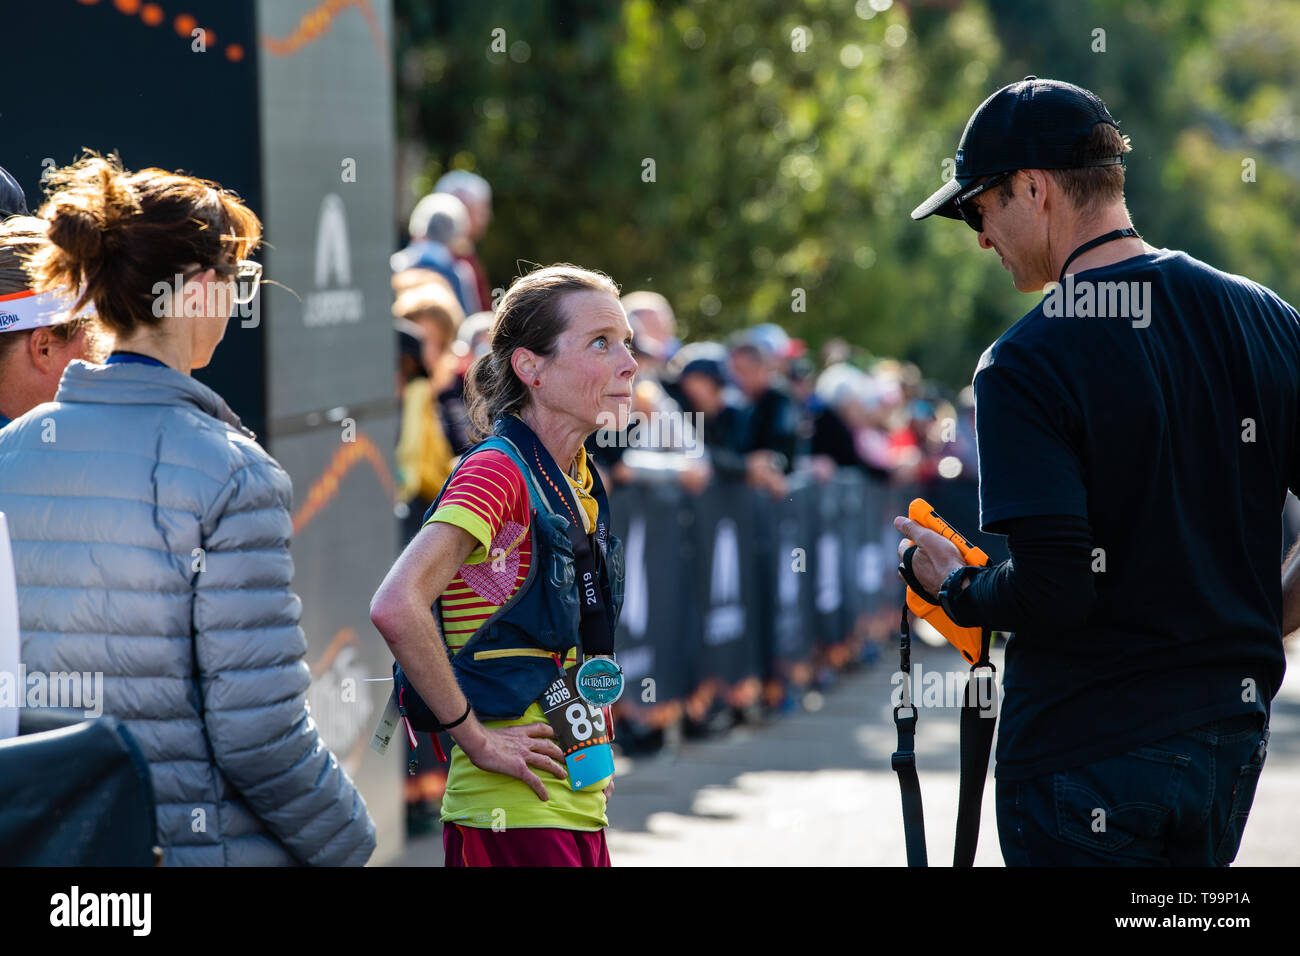 Blue Mountains, Australia - April 16 2019: Ultra-Trail Australia UTA11 race. Runner Beth Cardelli, 2nd place, has an interview at the finish line. - Stock Image